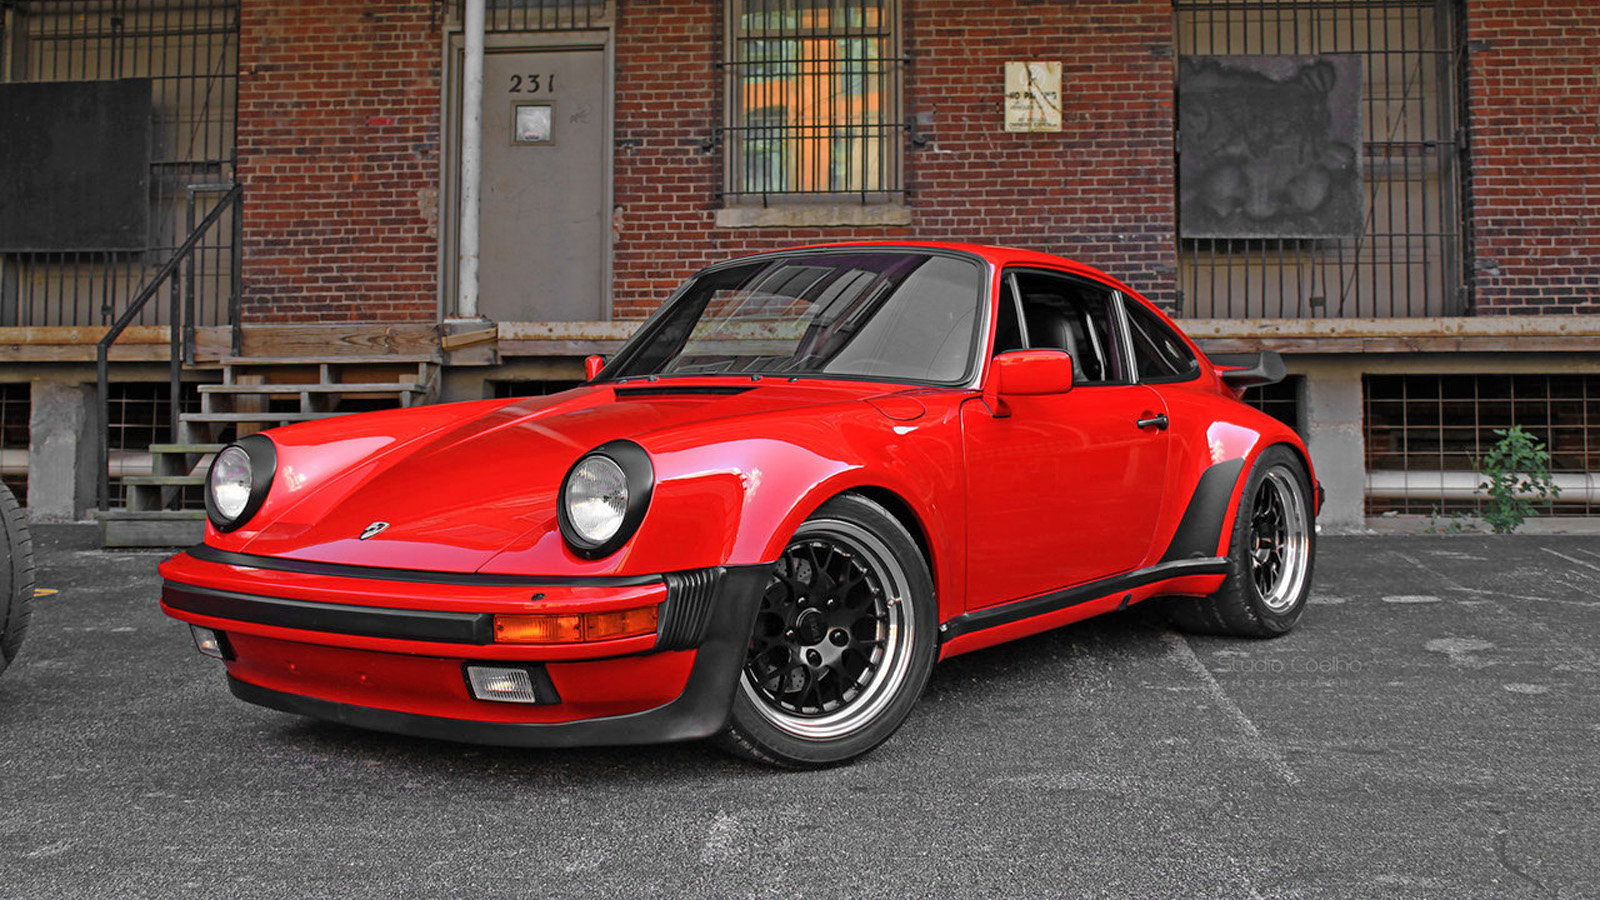 5 Old,School Porsches Turbos for Flashback Friday